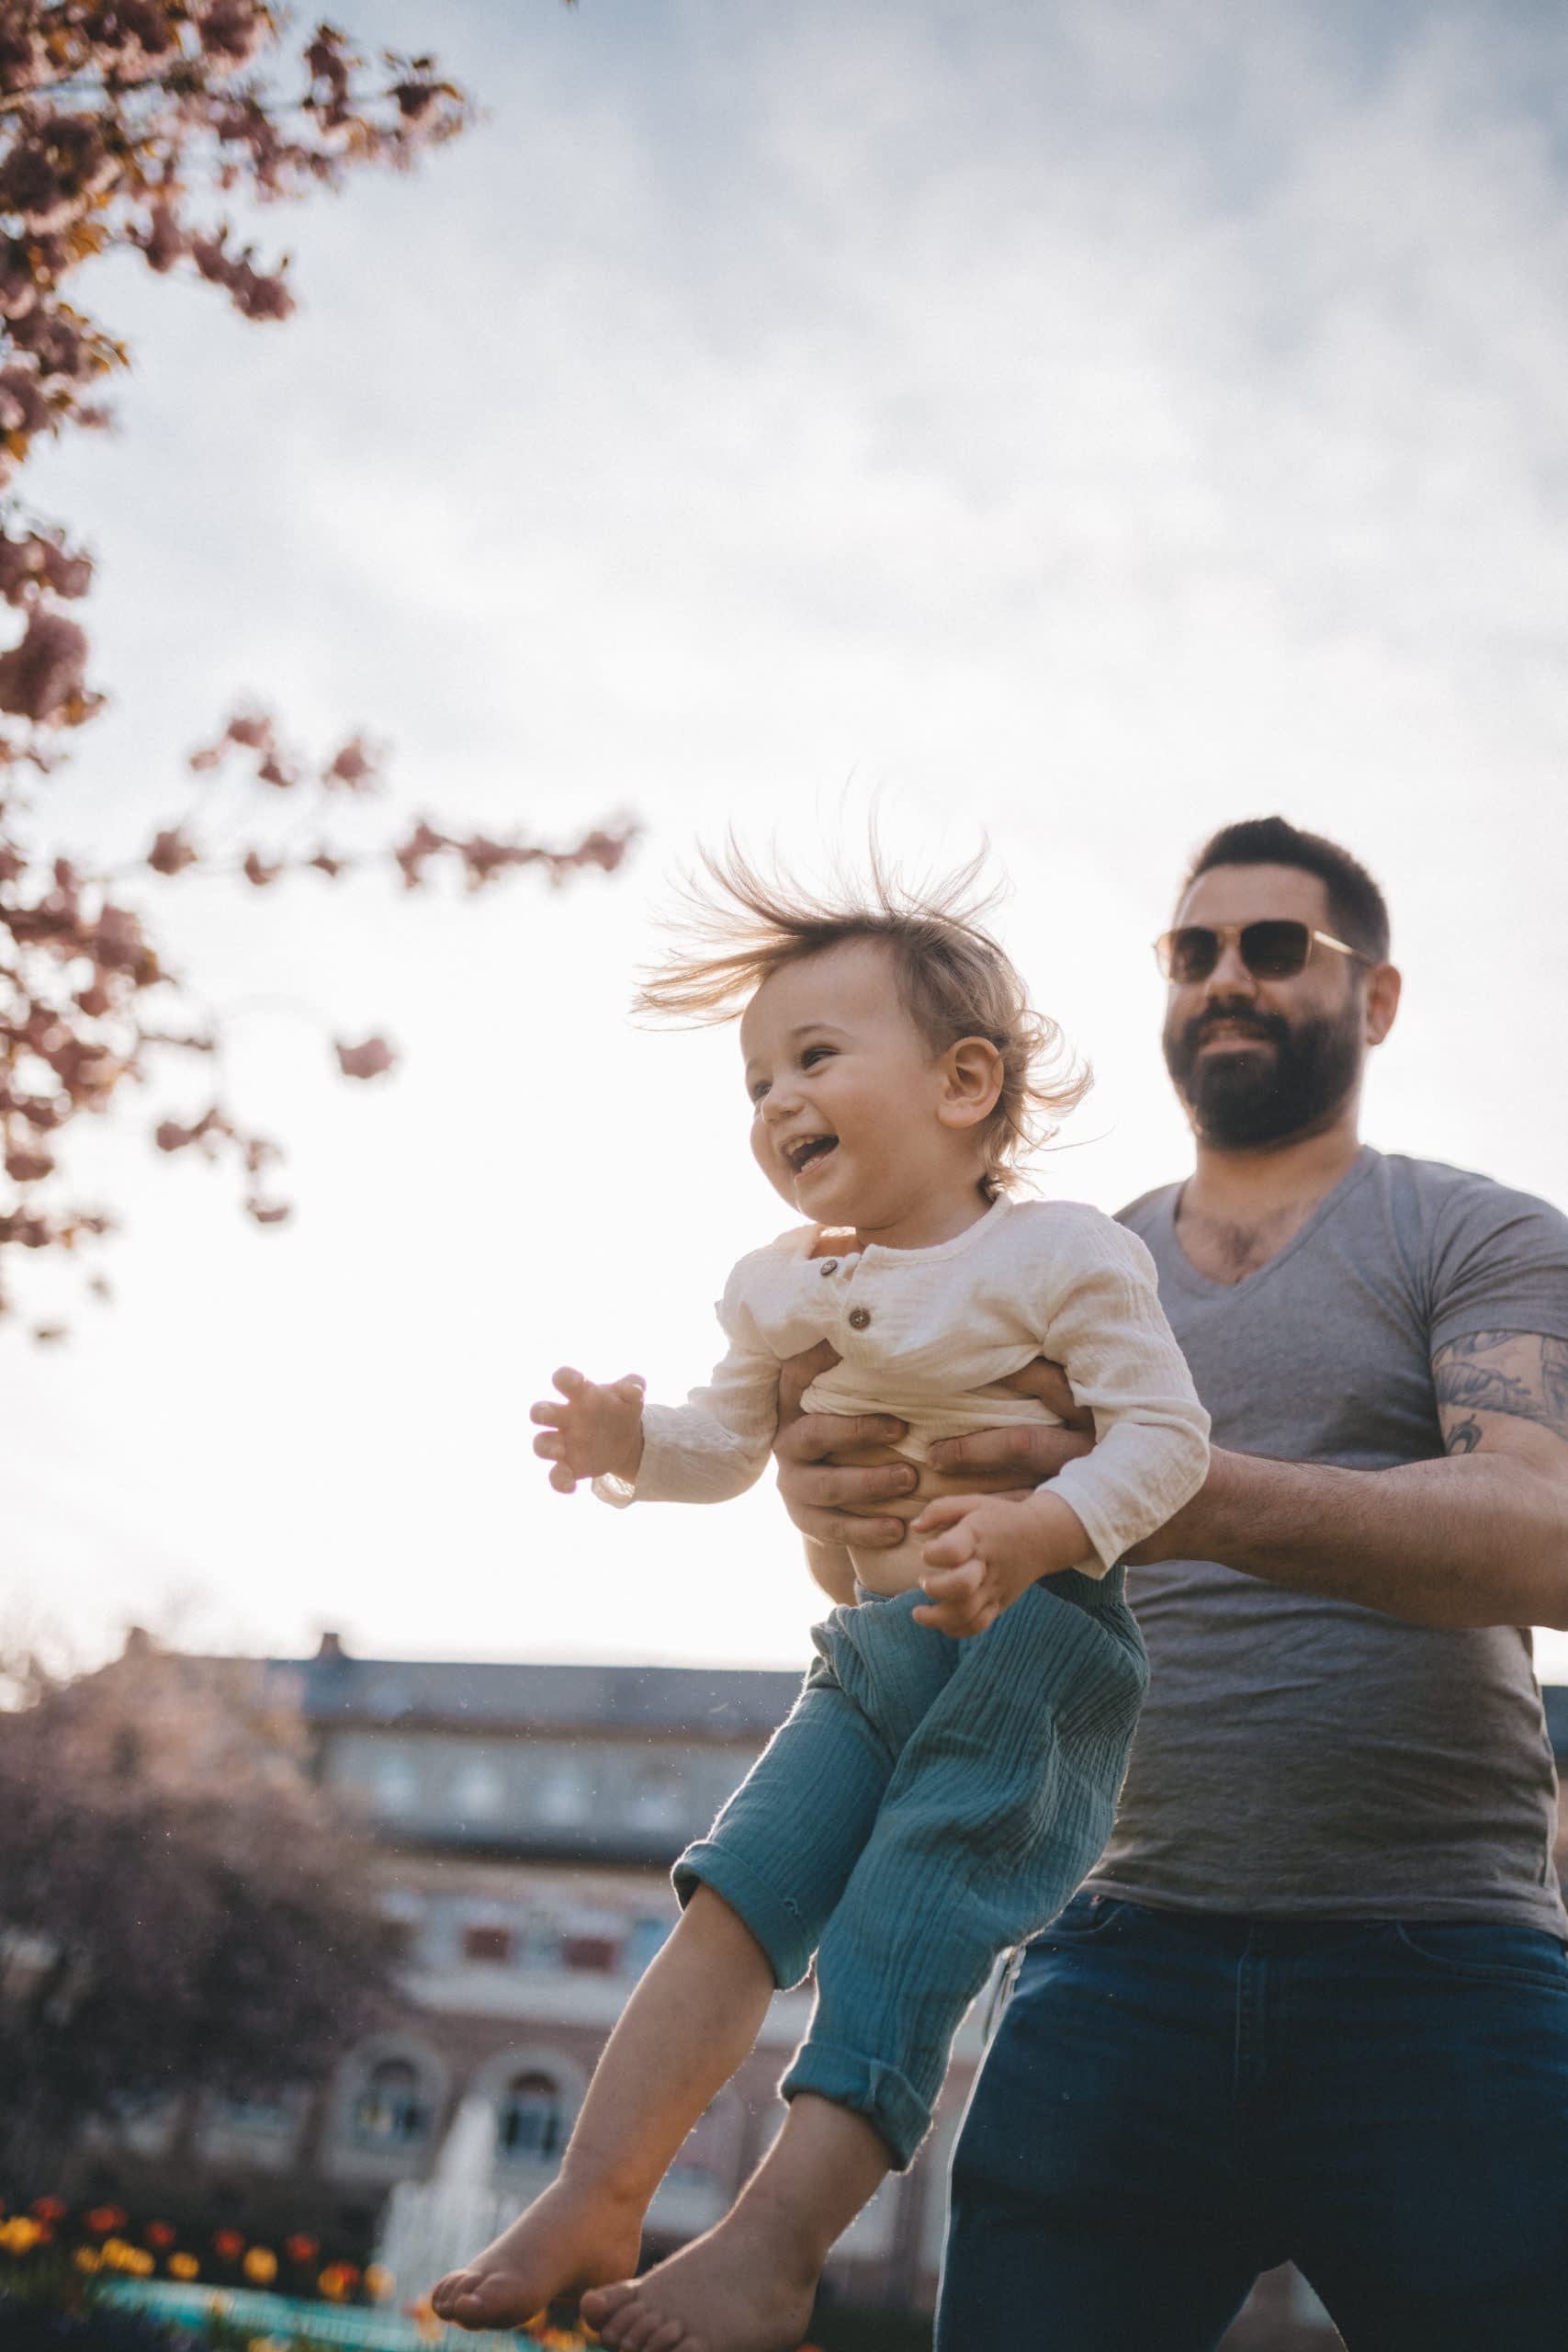 The father throws his child into the air.